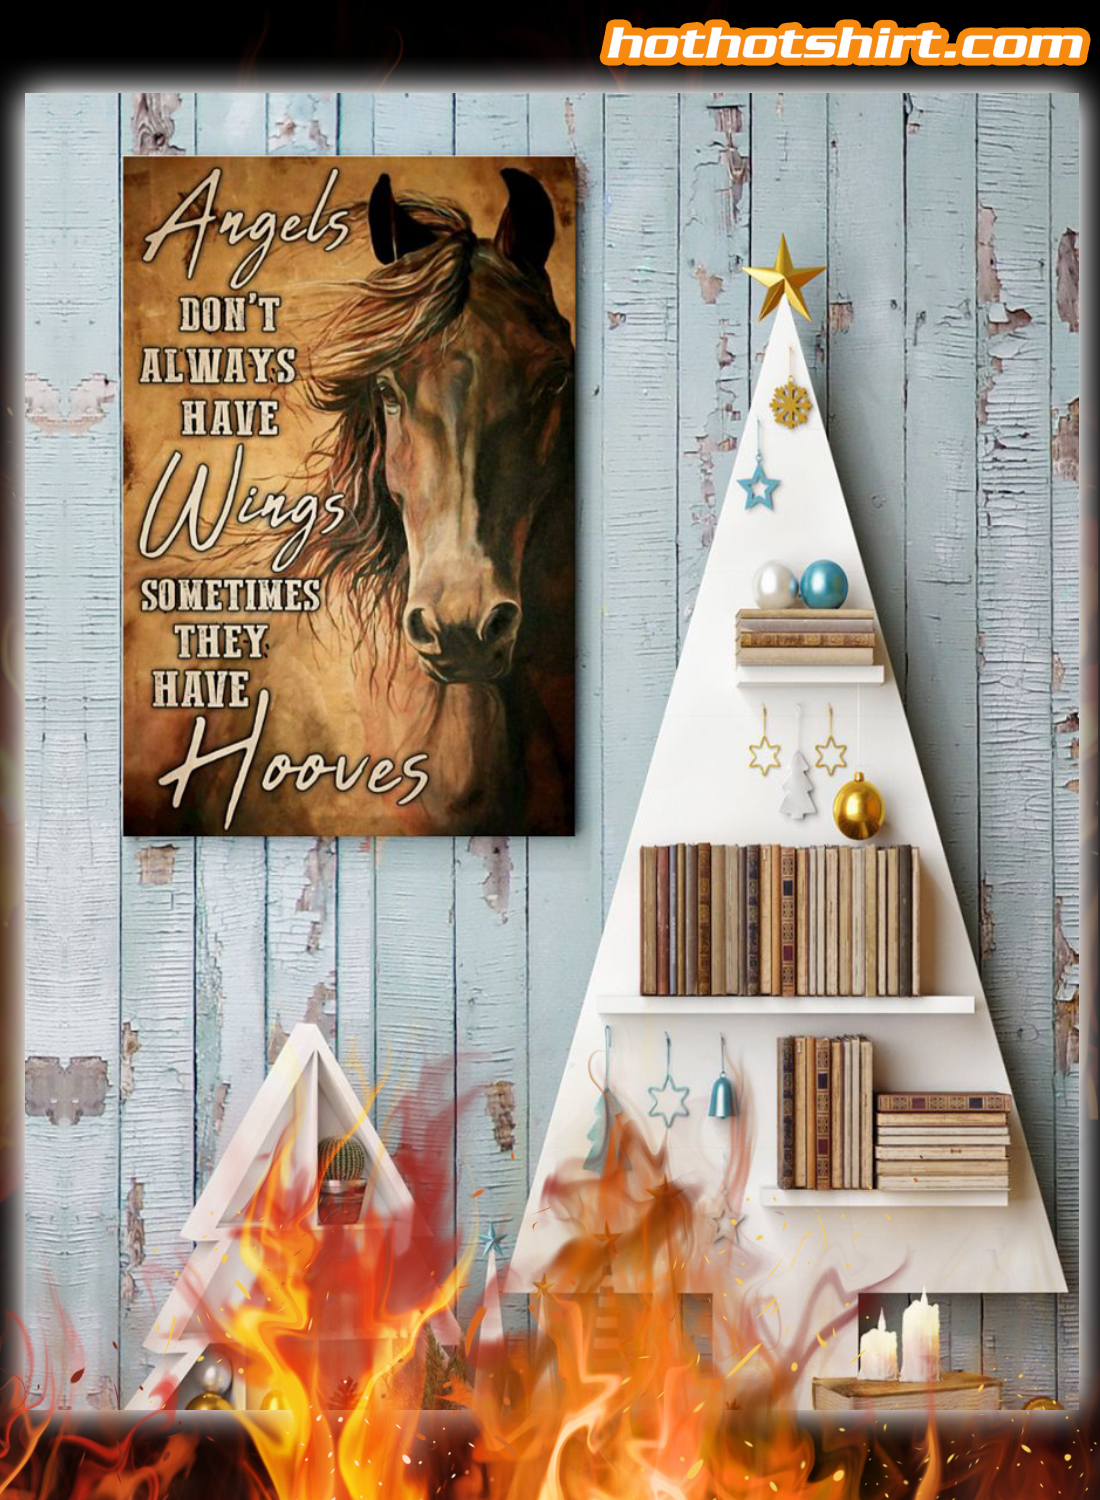 Horse Angels don't always have wings sometimes they have hooves poster